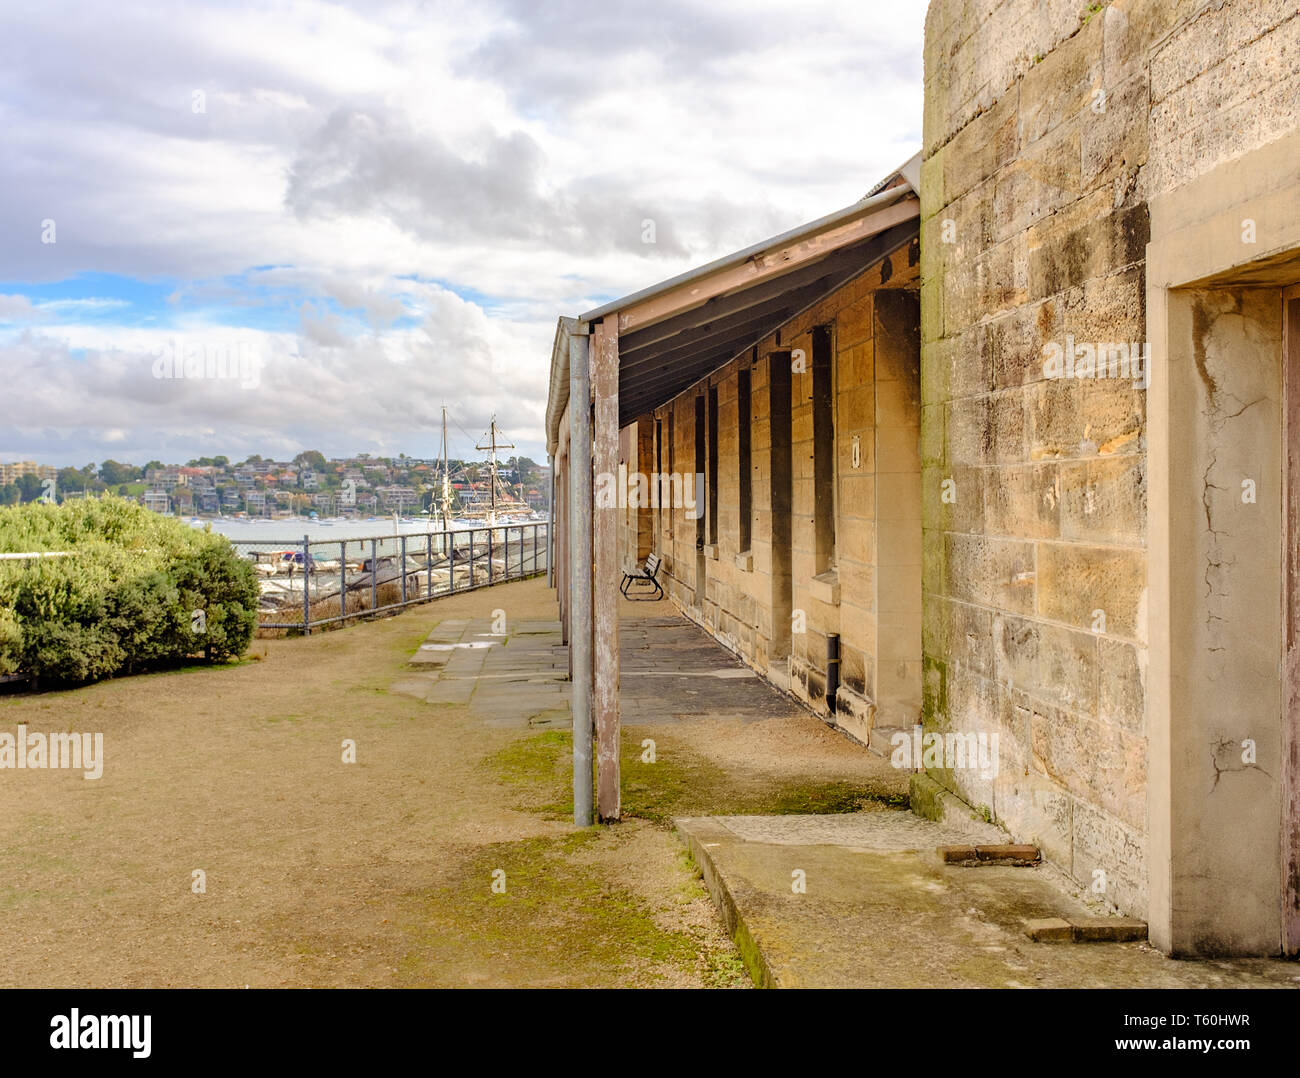 Cockatoo island Sydney, Australia, Historical stone prison building built by convicts for solitary confinement of prisoners, tall sailing ships masts  - Stock Image